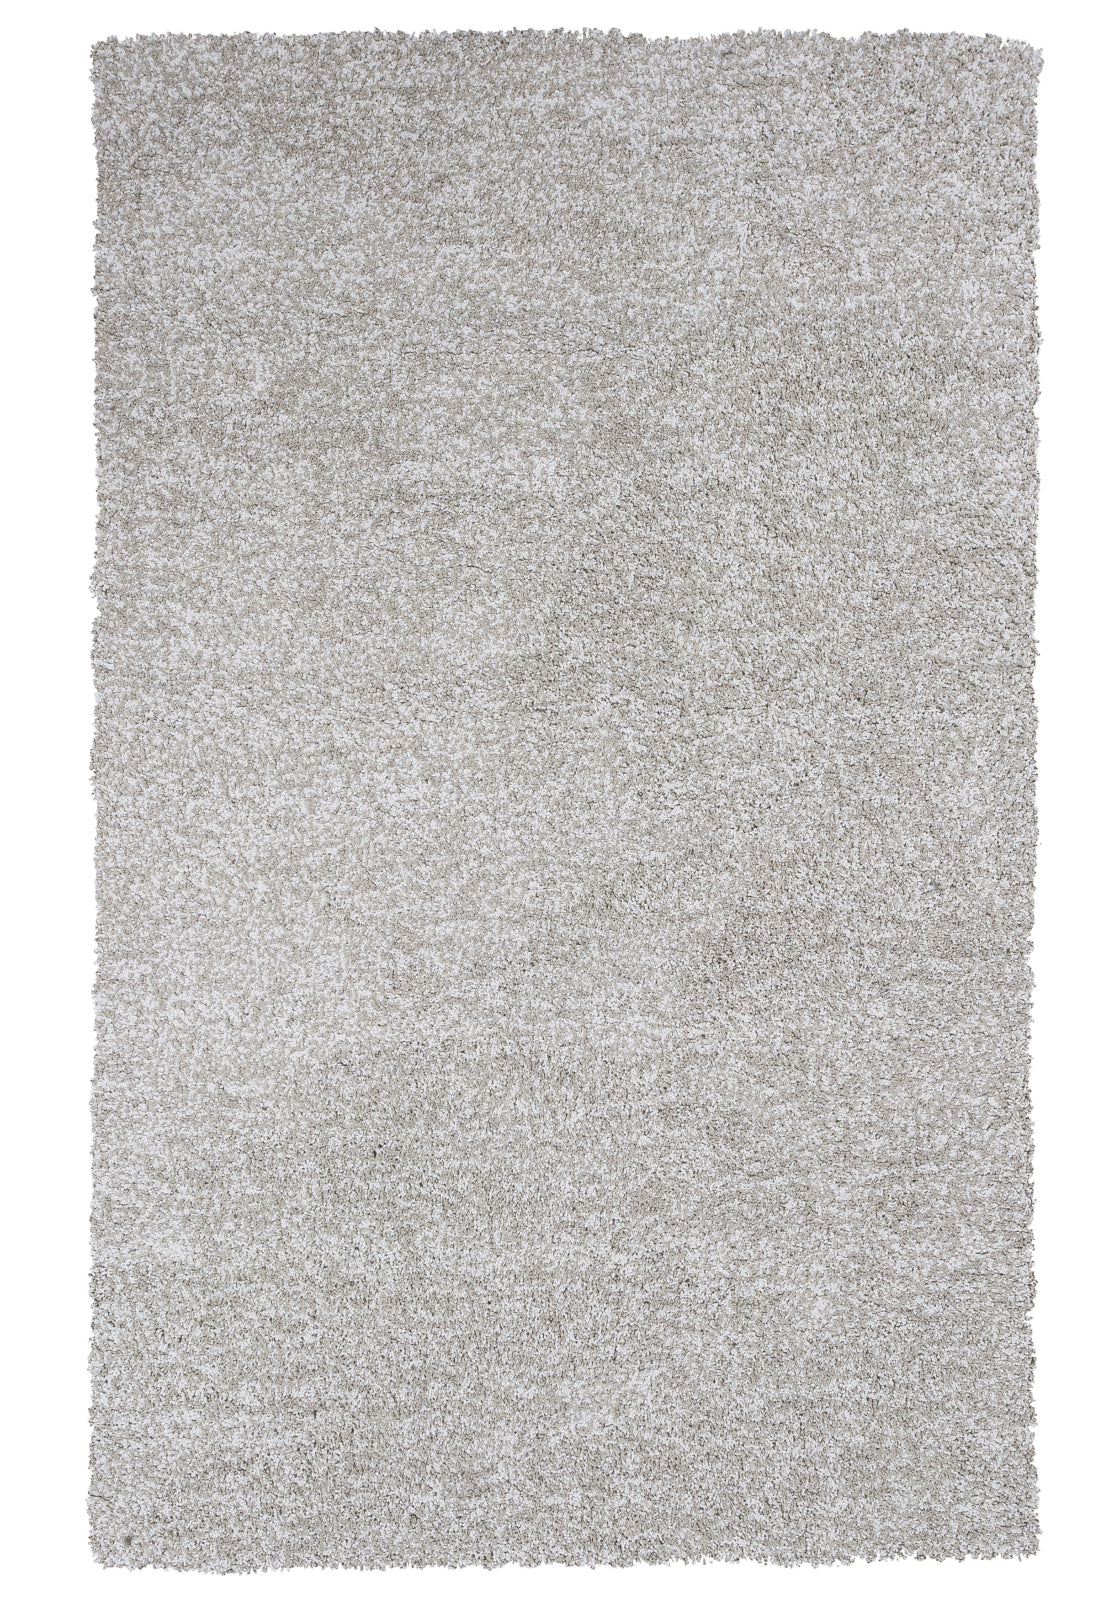 KAS Bliss 1580 Ivory Heather Shag Area Rug main image